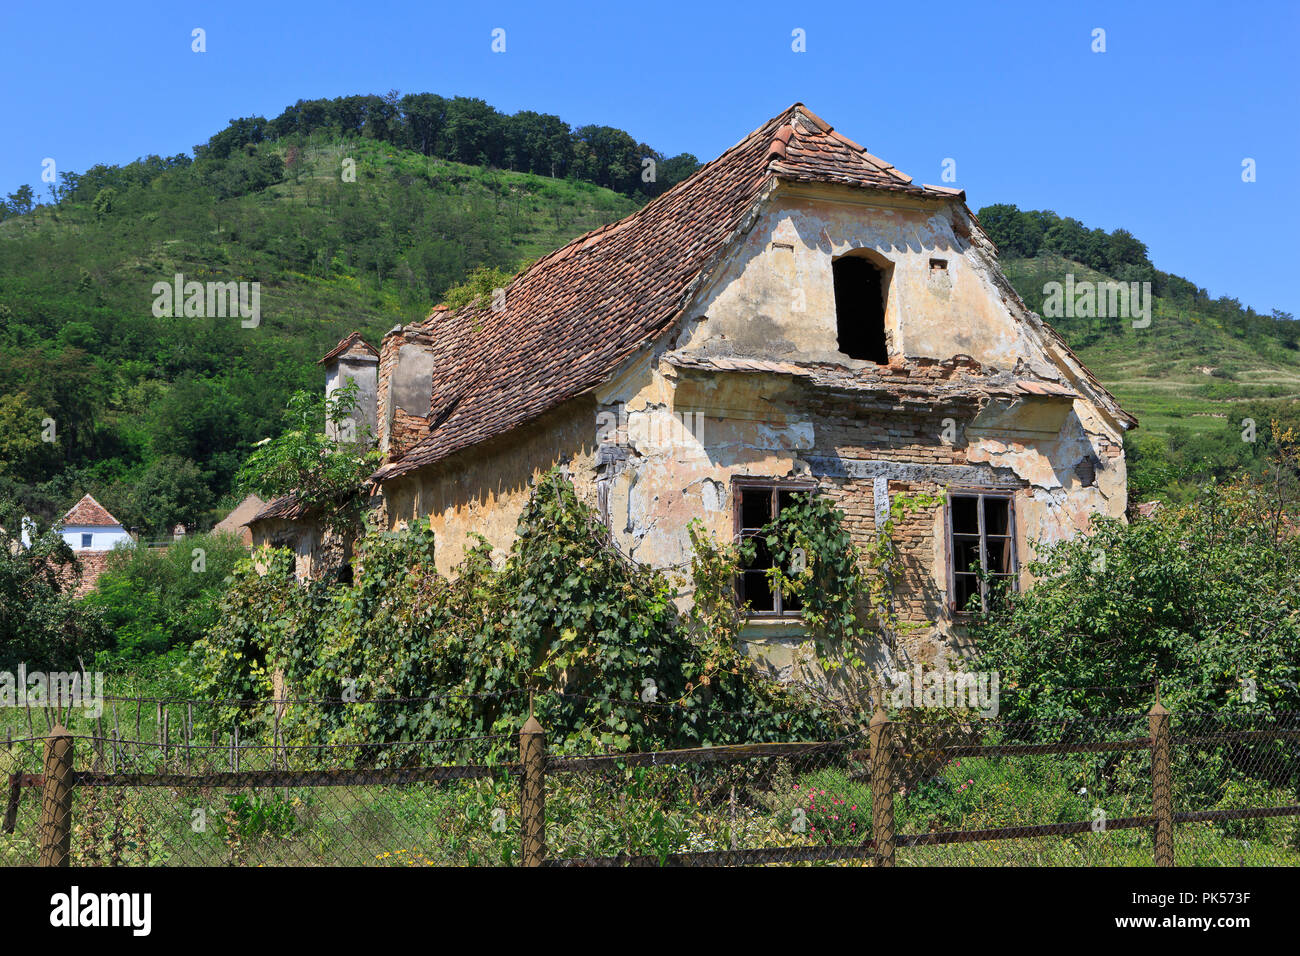 A a derelict house in Biertan, Romania - Stock Image